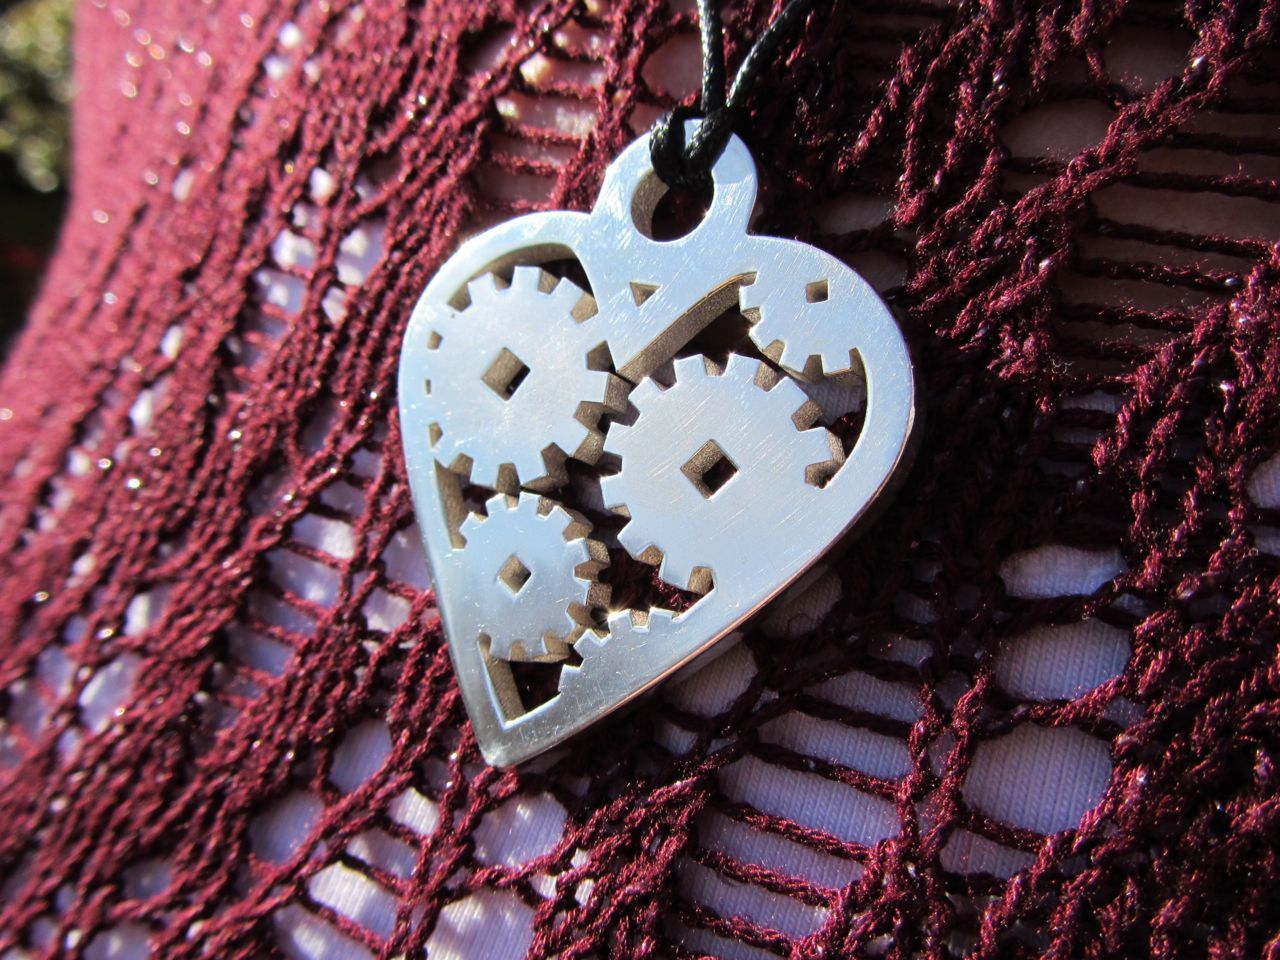 Prototype updates: The 'Love Machine' pendant in sliver works really well